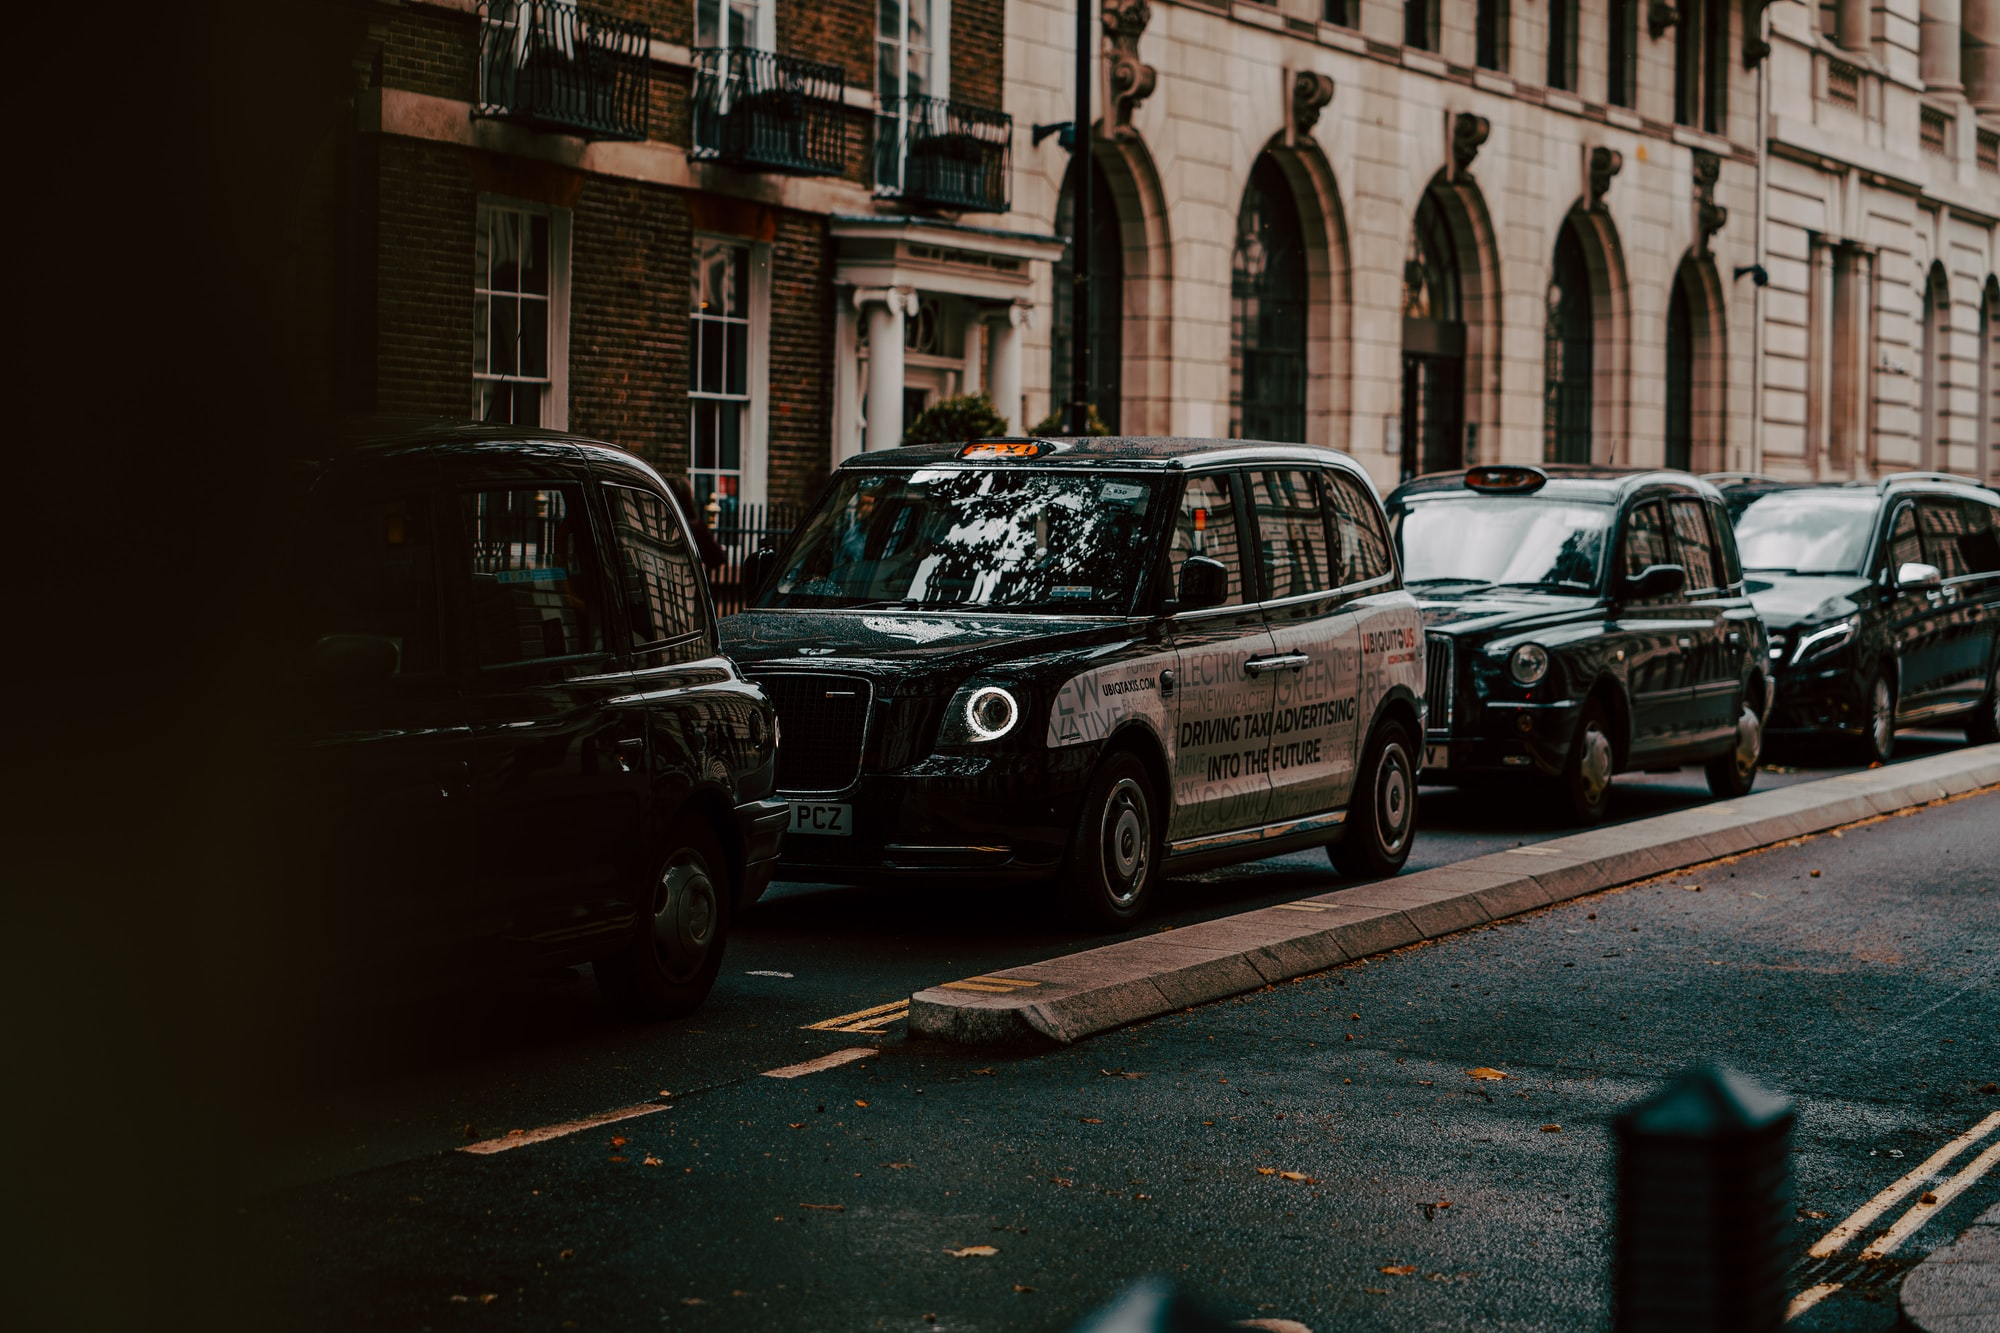 Classic London Taxi (Black Cab) shot in London Town.